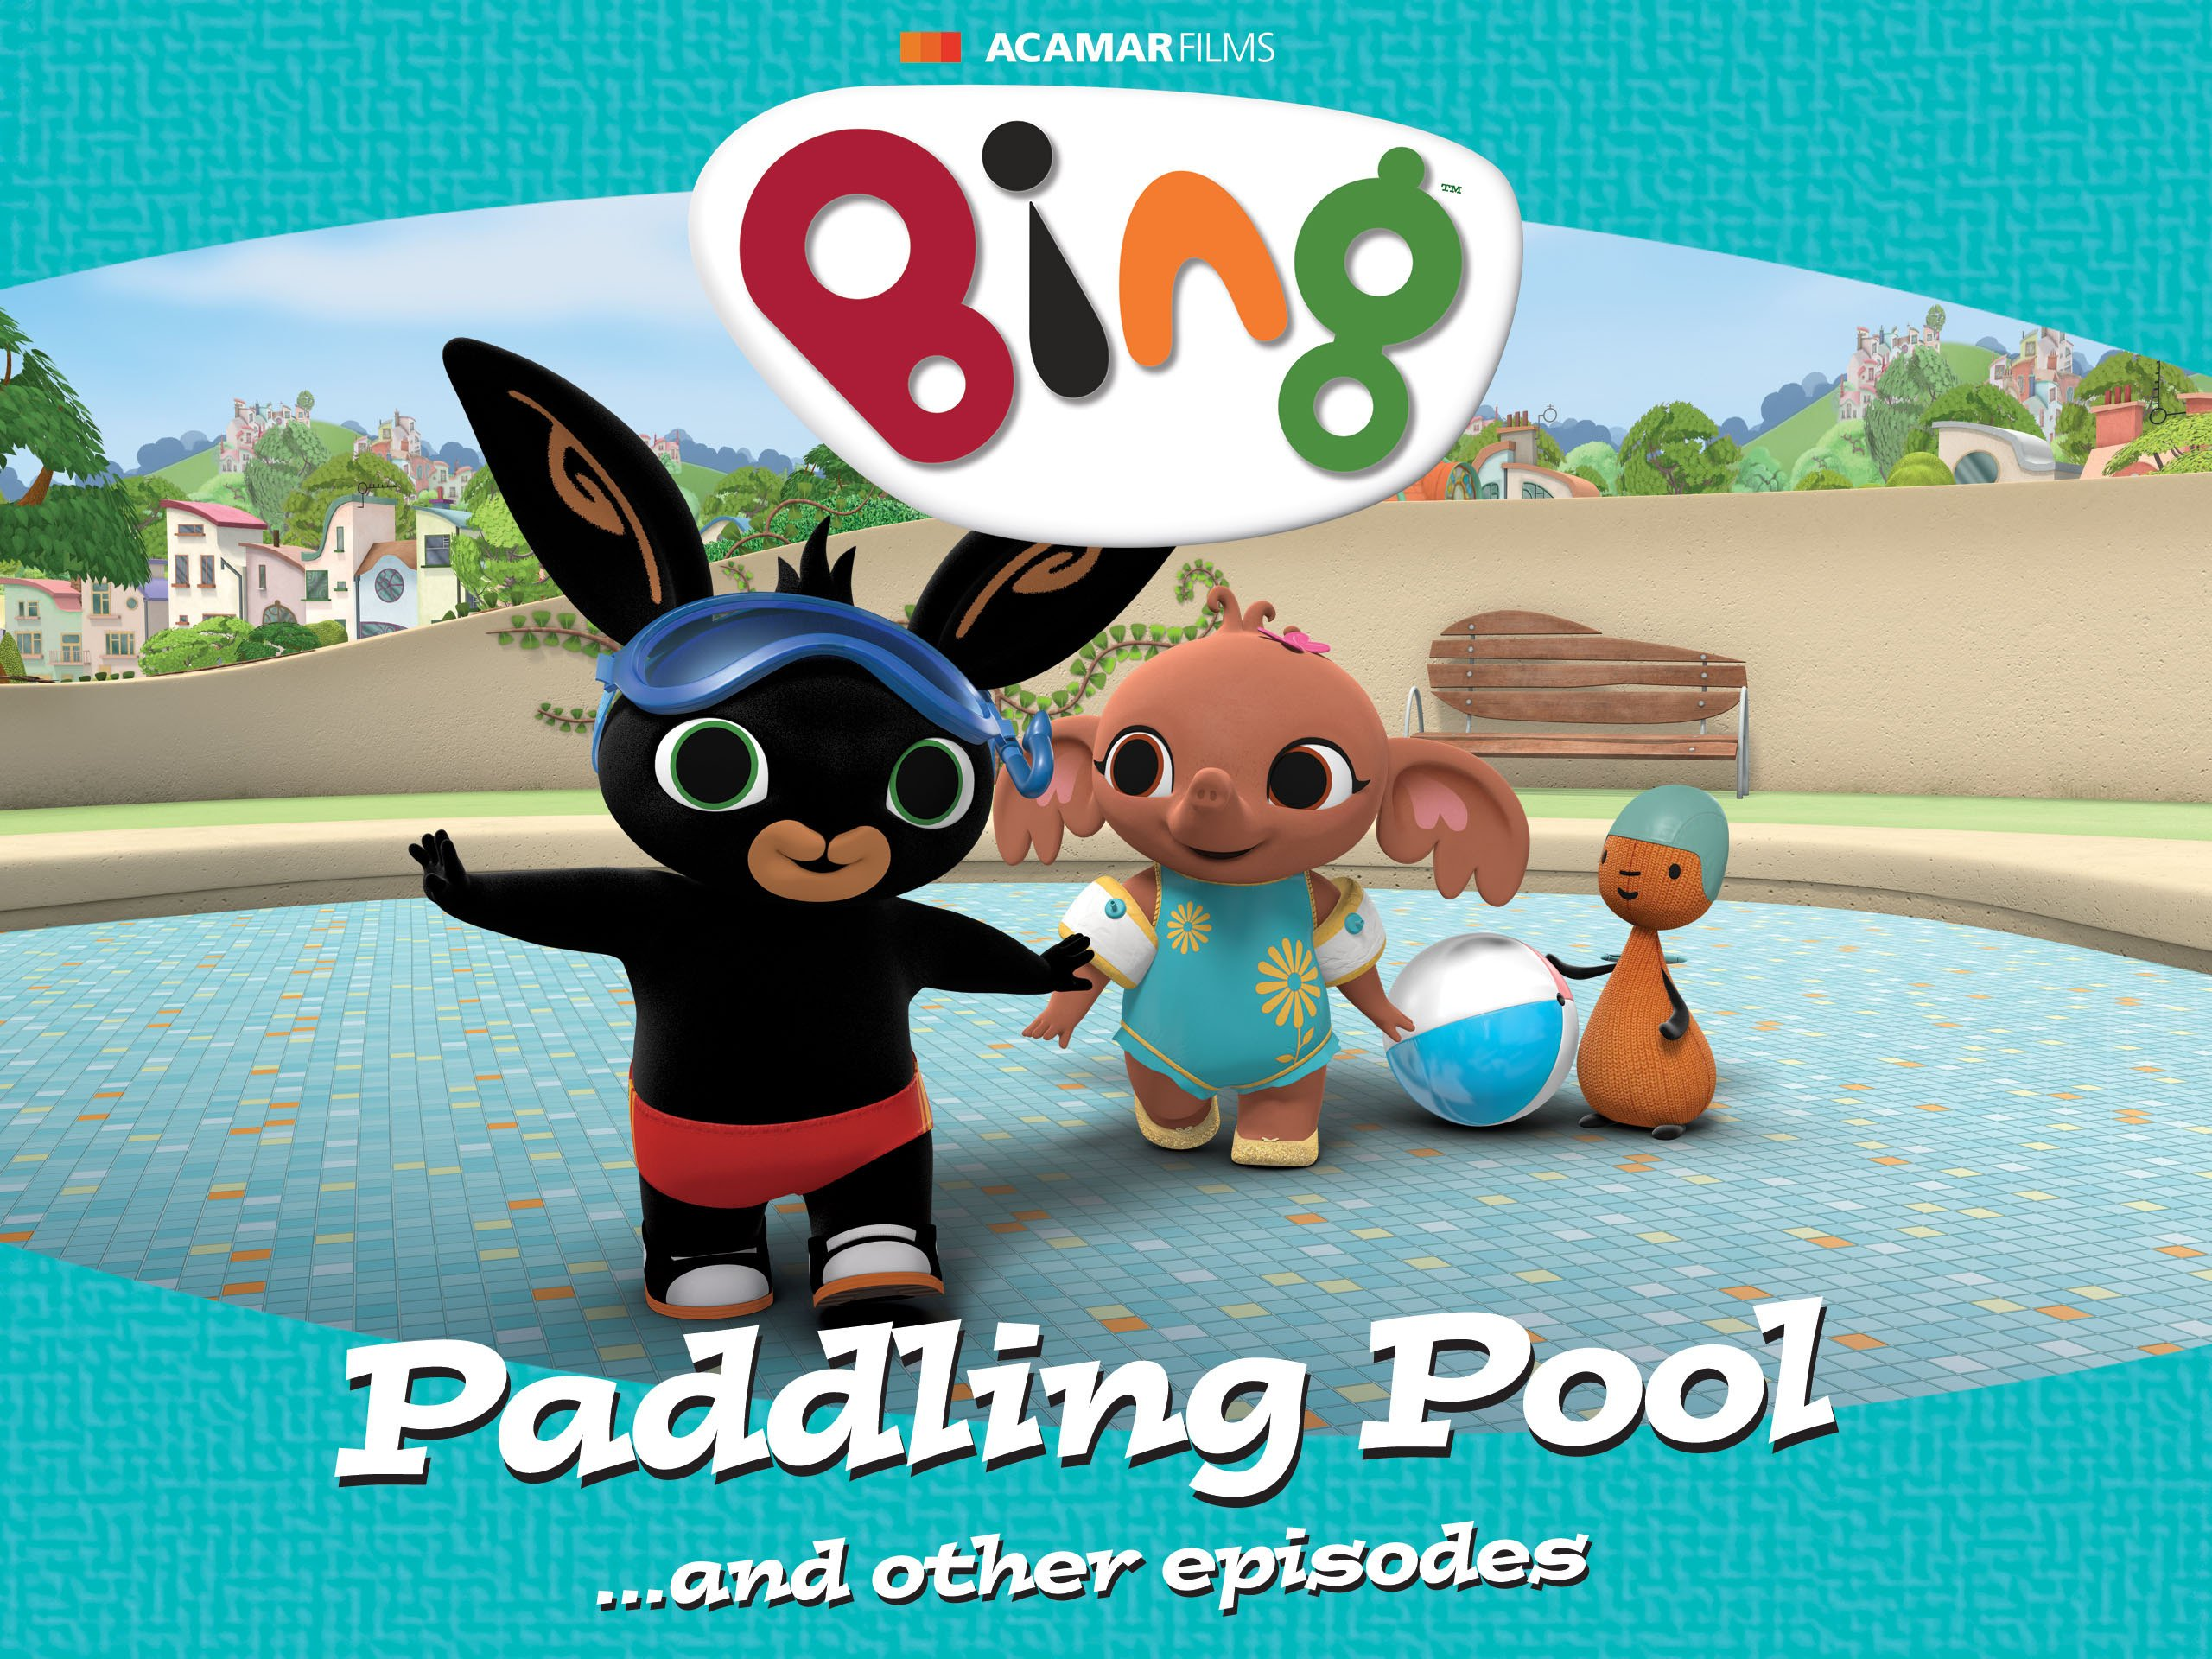 Bing Paddling Pool & Other Episodes on Amazon Prime Instant Video UK